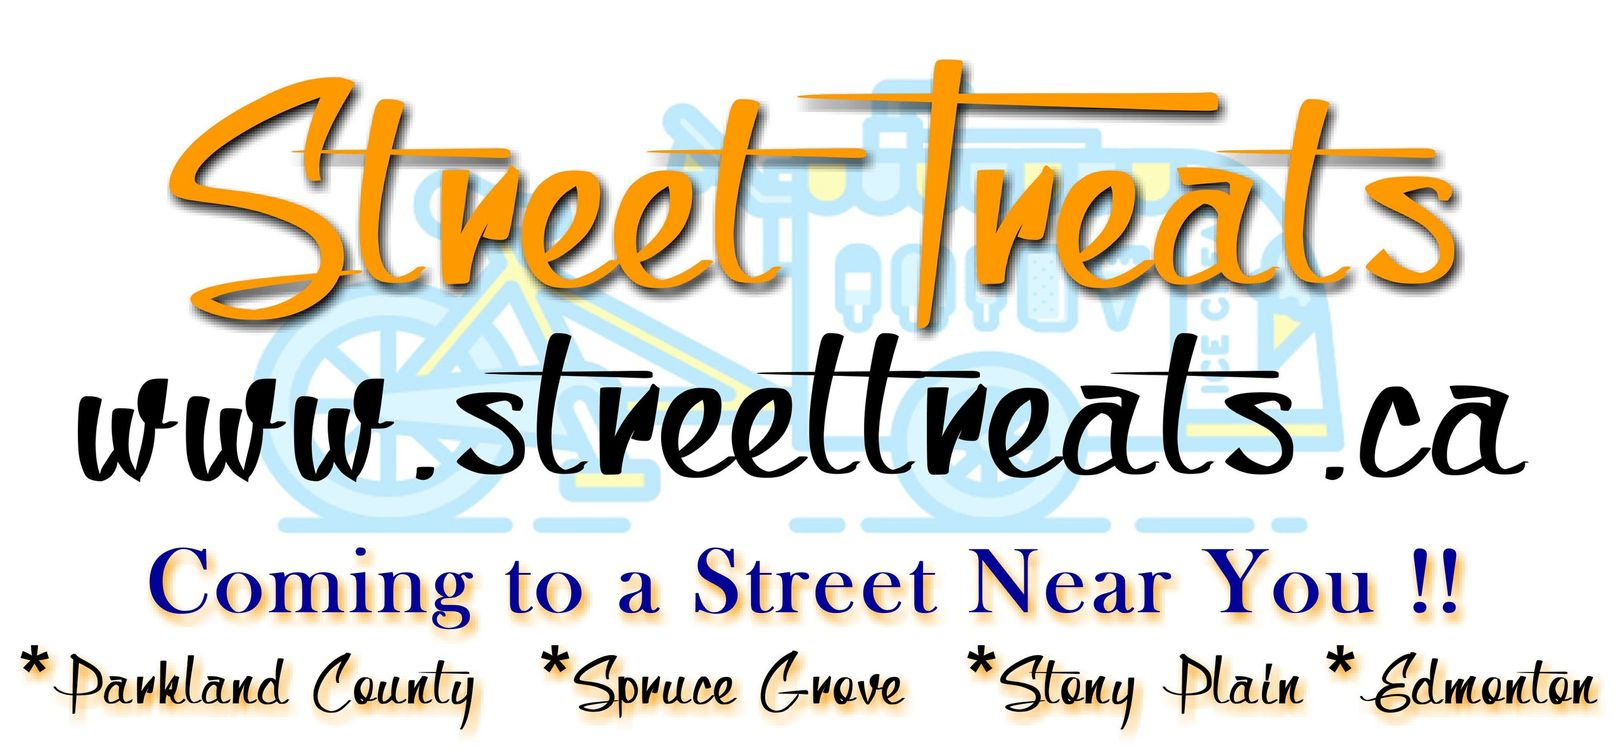 Street Treats Inc